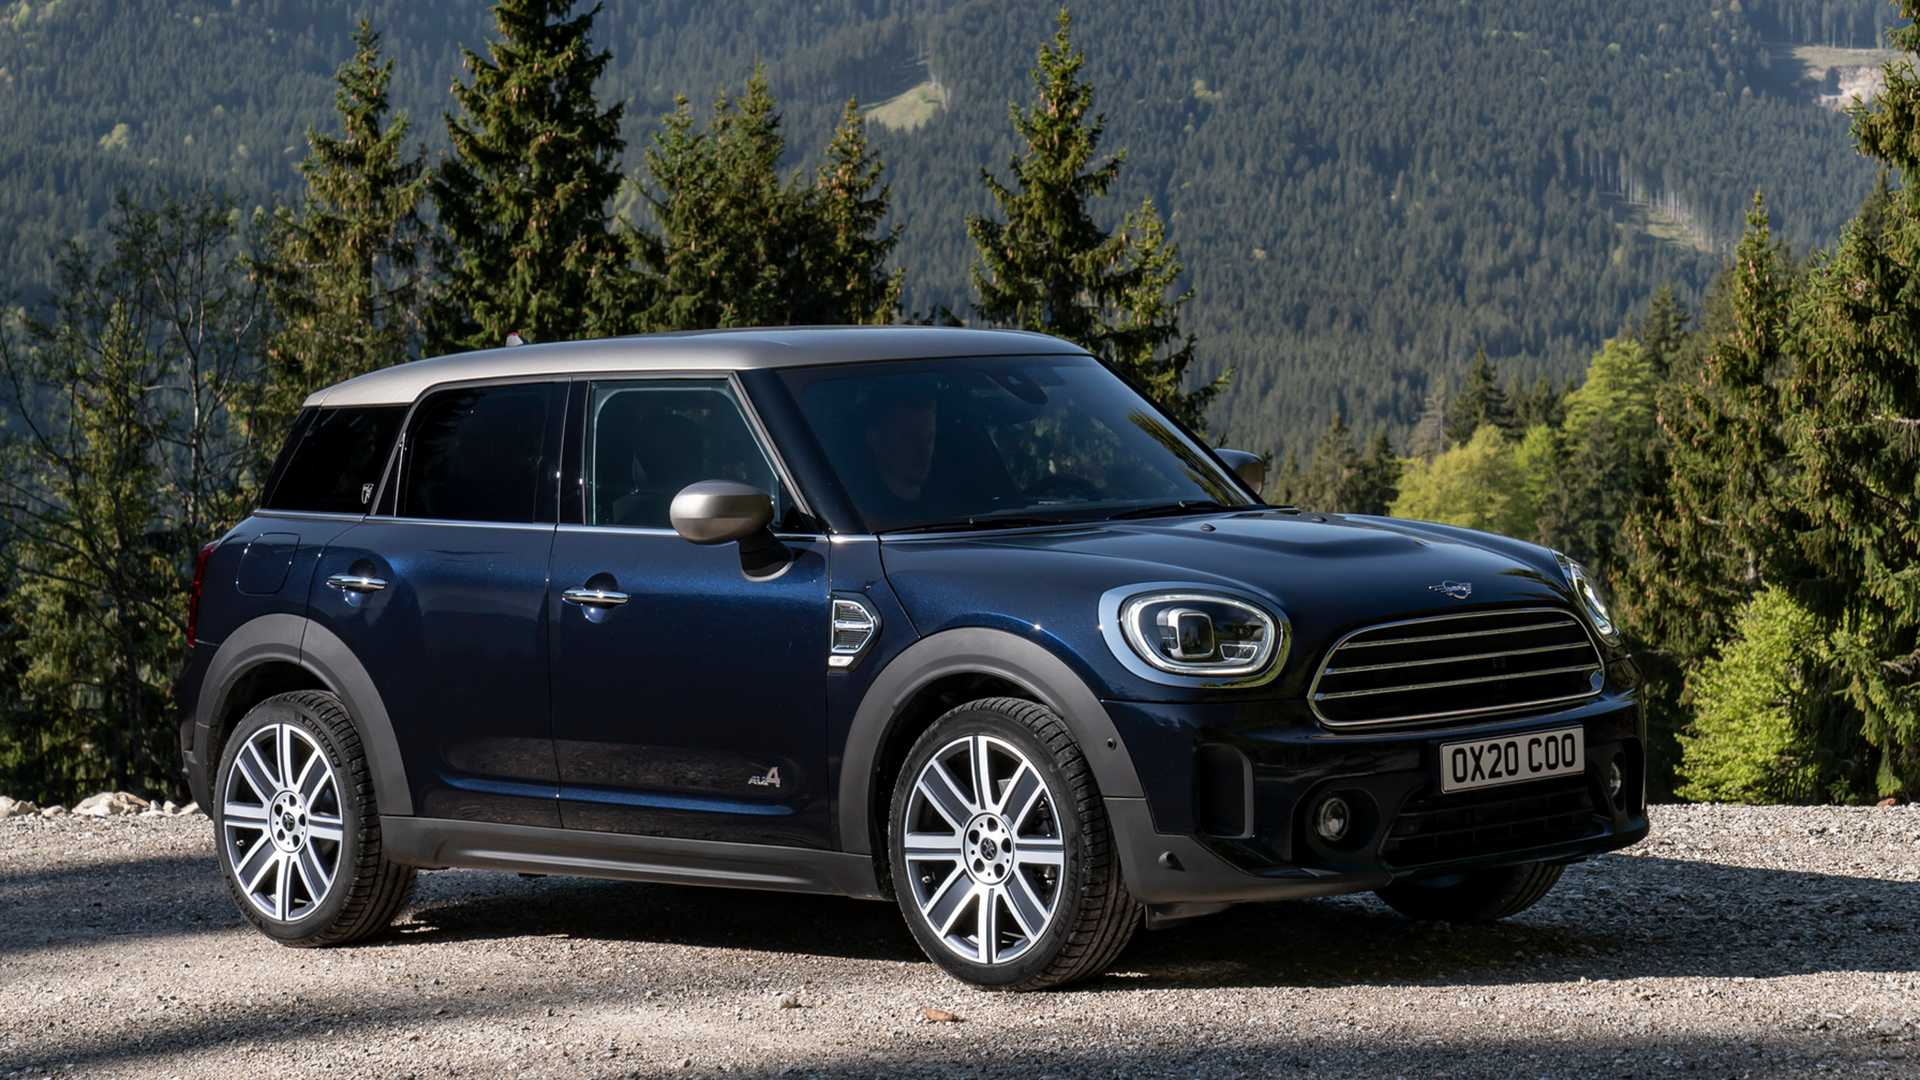 mini-cooper-countryman-all4-2020-5